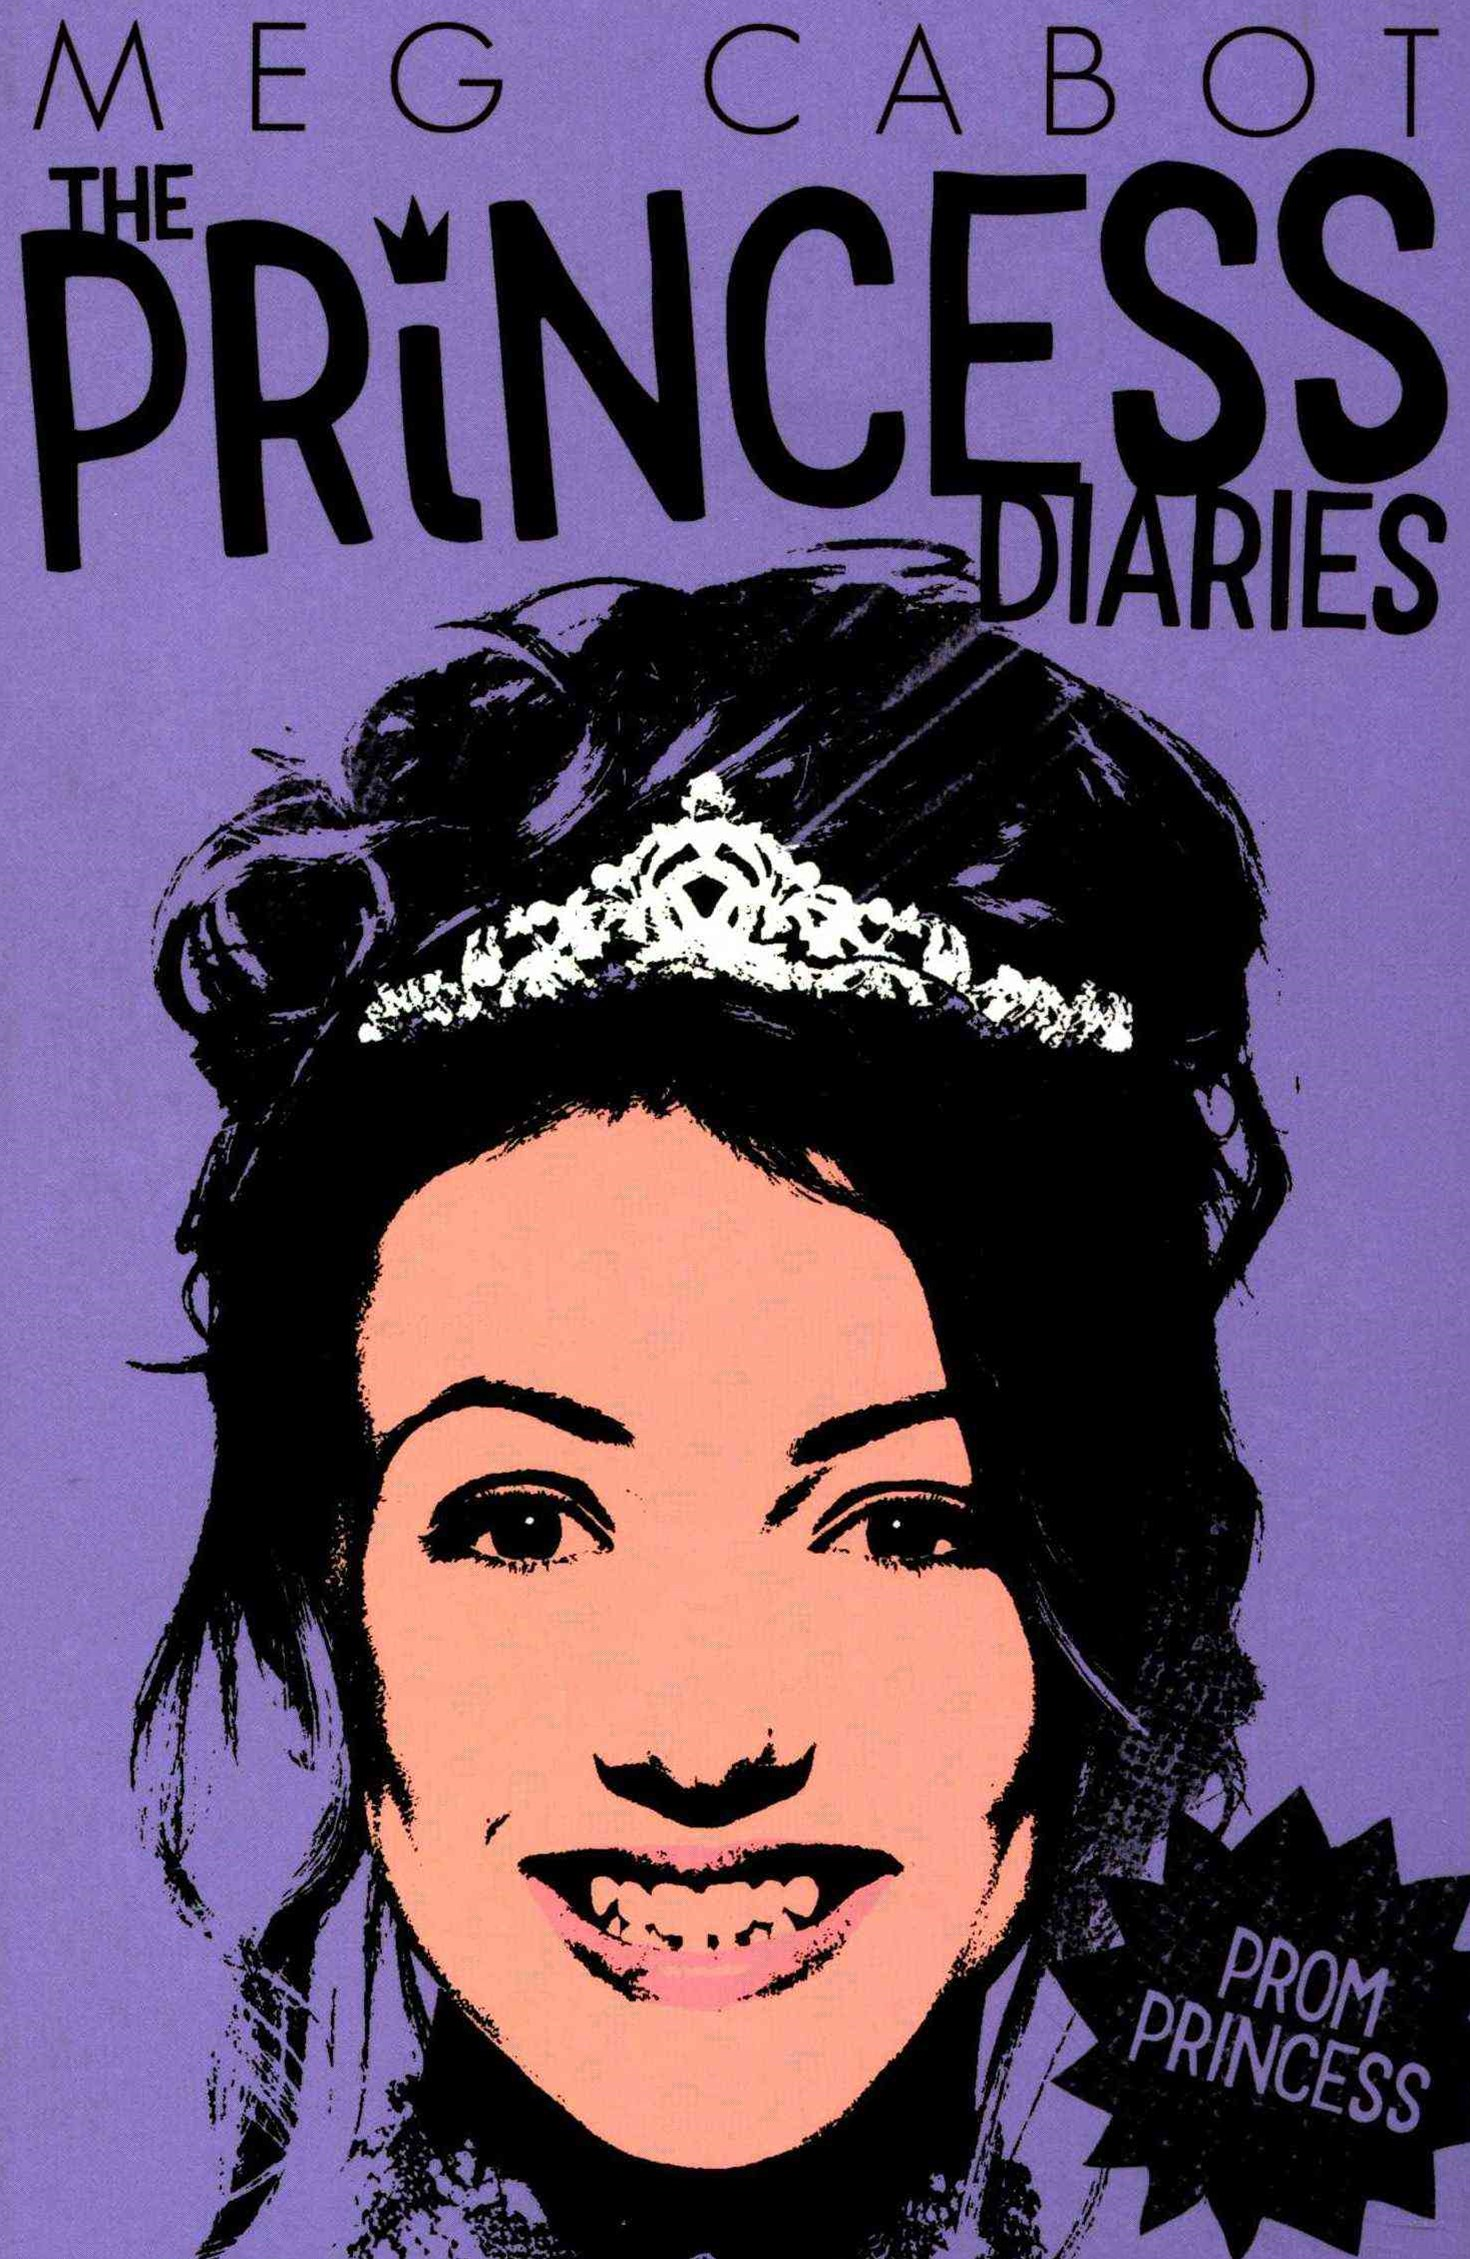 The Princess Diaries 5: Prom Princess